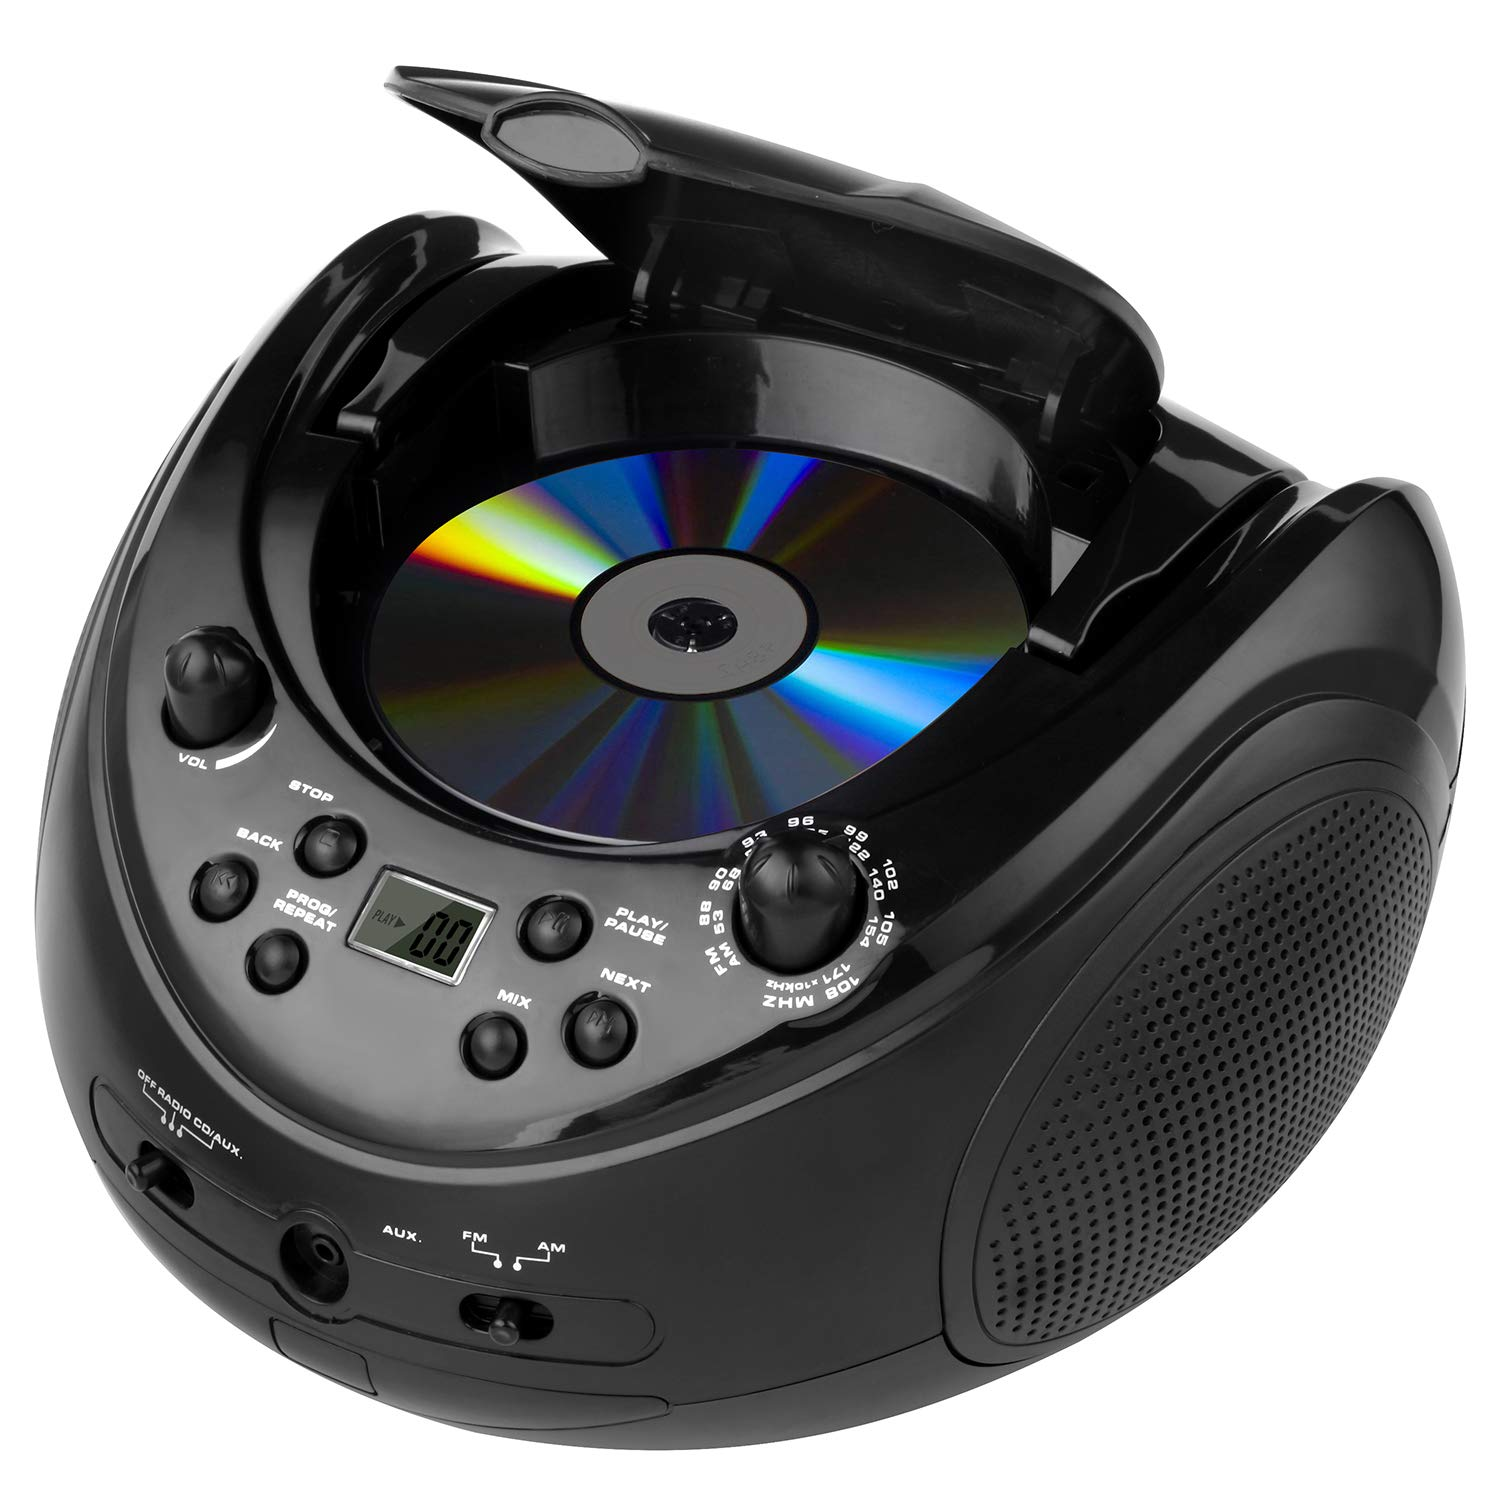 Memzuoix Portable Stereo CD Player, CD Boombox with AM/FM Radio and 3.50mm Aux Line-in Audio Input